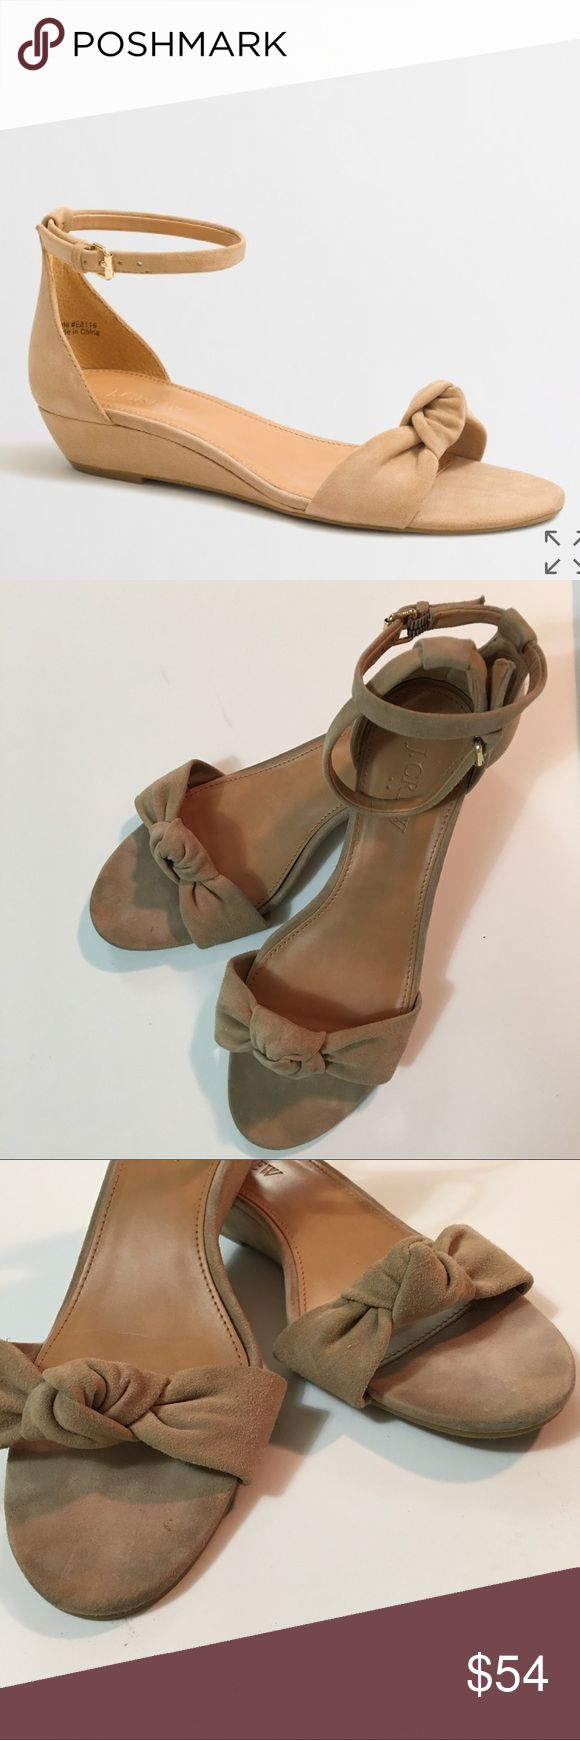 "J.Crew Nude Demi-Wedge Suede Top Knot Sandals 6.5 J.Crew Women's Nude Beige Demi-Wedge Suede Top Knot Sandals Size 6.5 Summer Toe to heel length 9"". Heel height 1"". Slight discoloration on heels but overall excellent condition J. Crew Shoes Sandals"